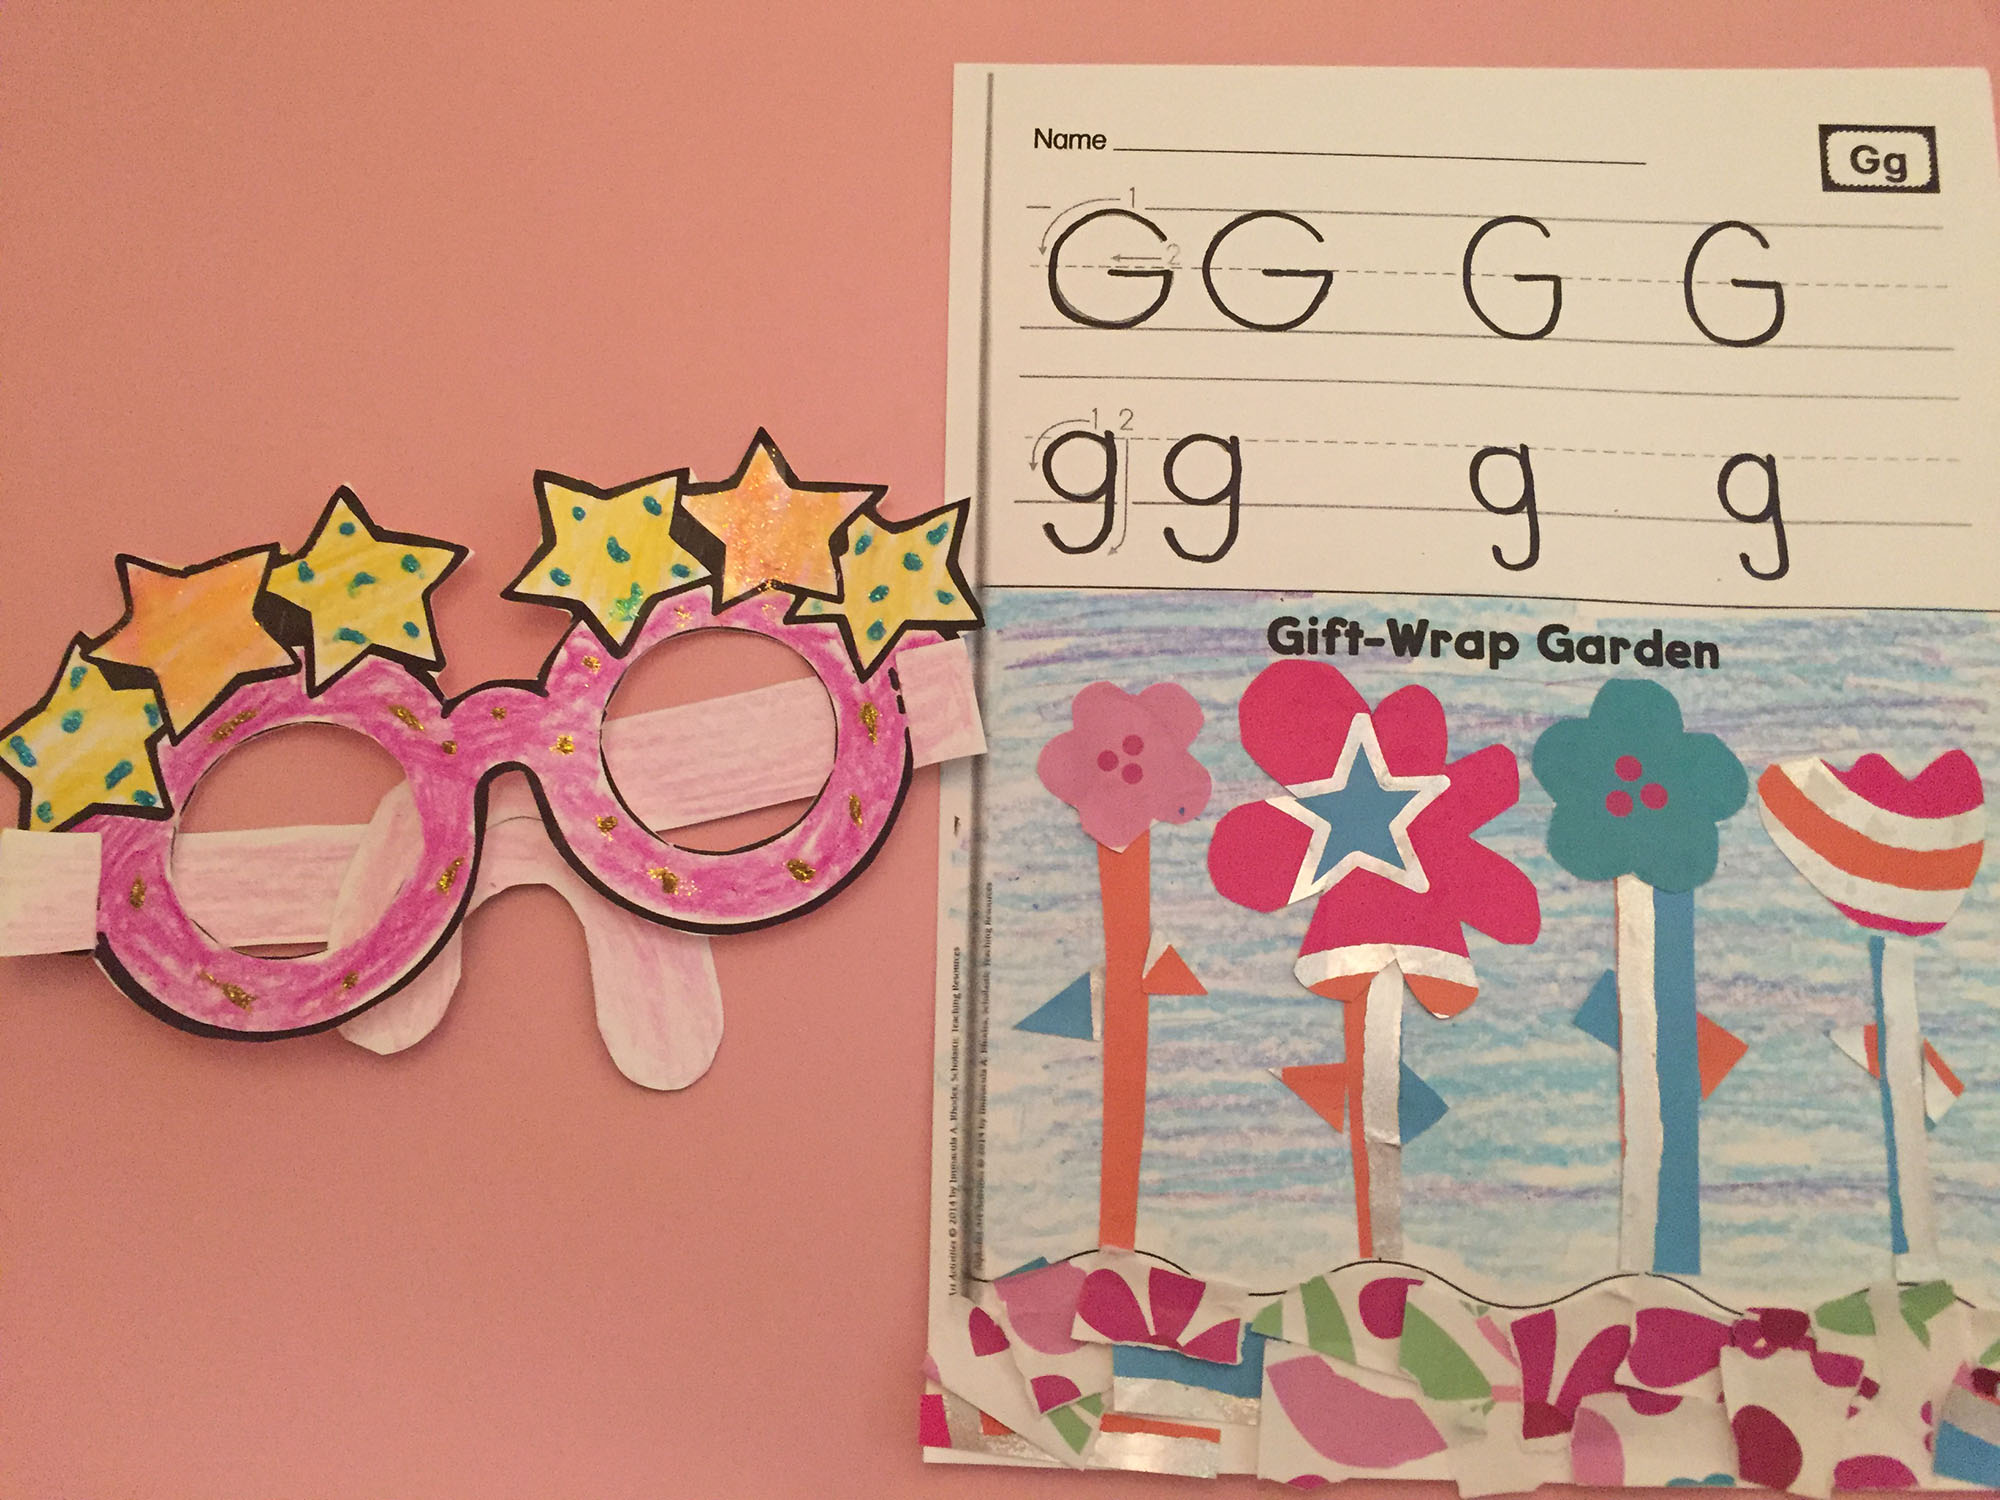 Glitter Glasses and Gift-Wrap Garden